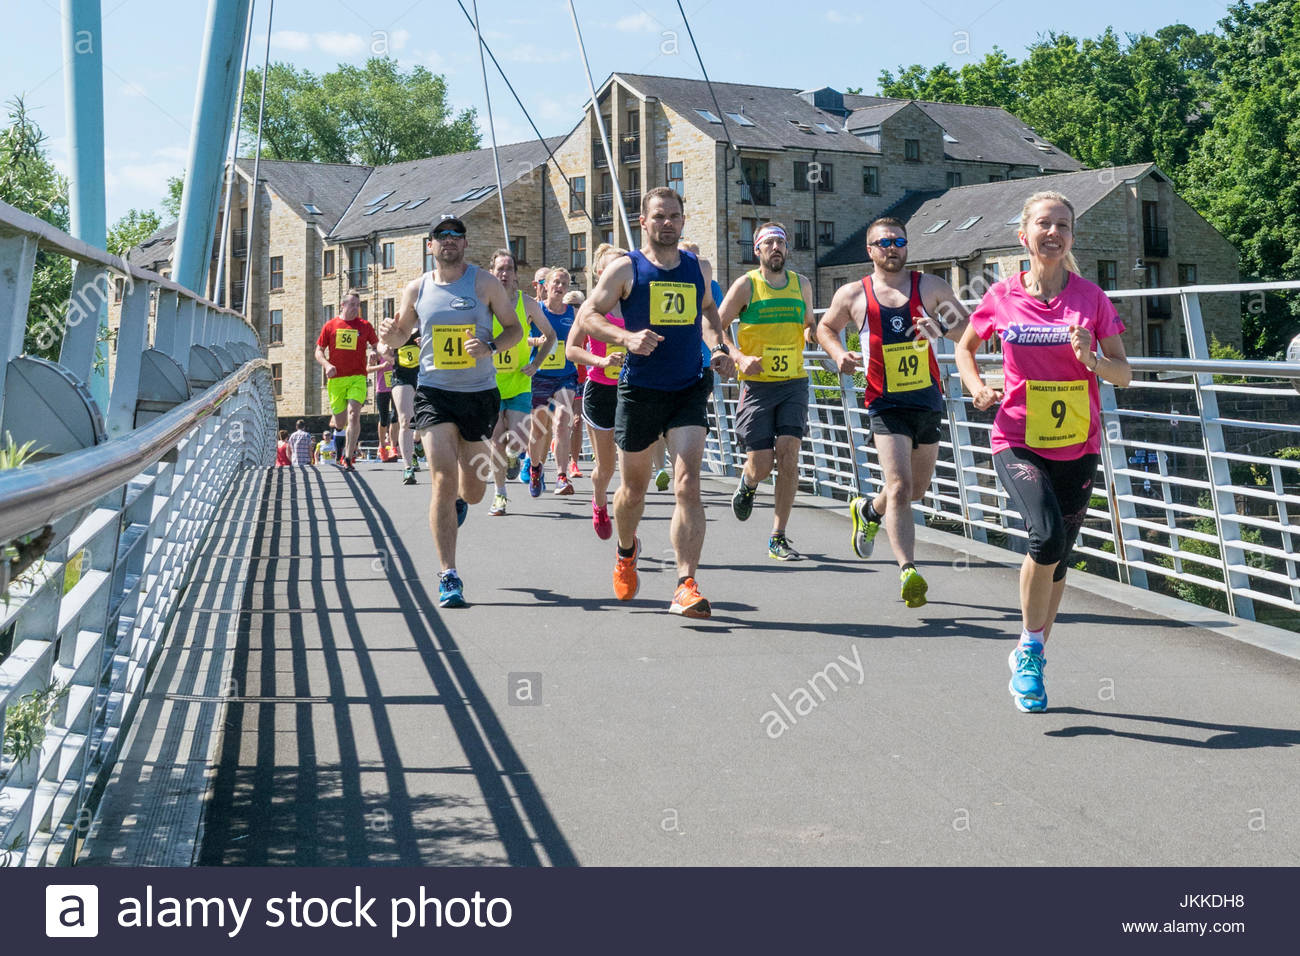 Runners cross the Millennium Bridge over the River Lune in Lancaster, England, as they take part in a running event - Stock Image